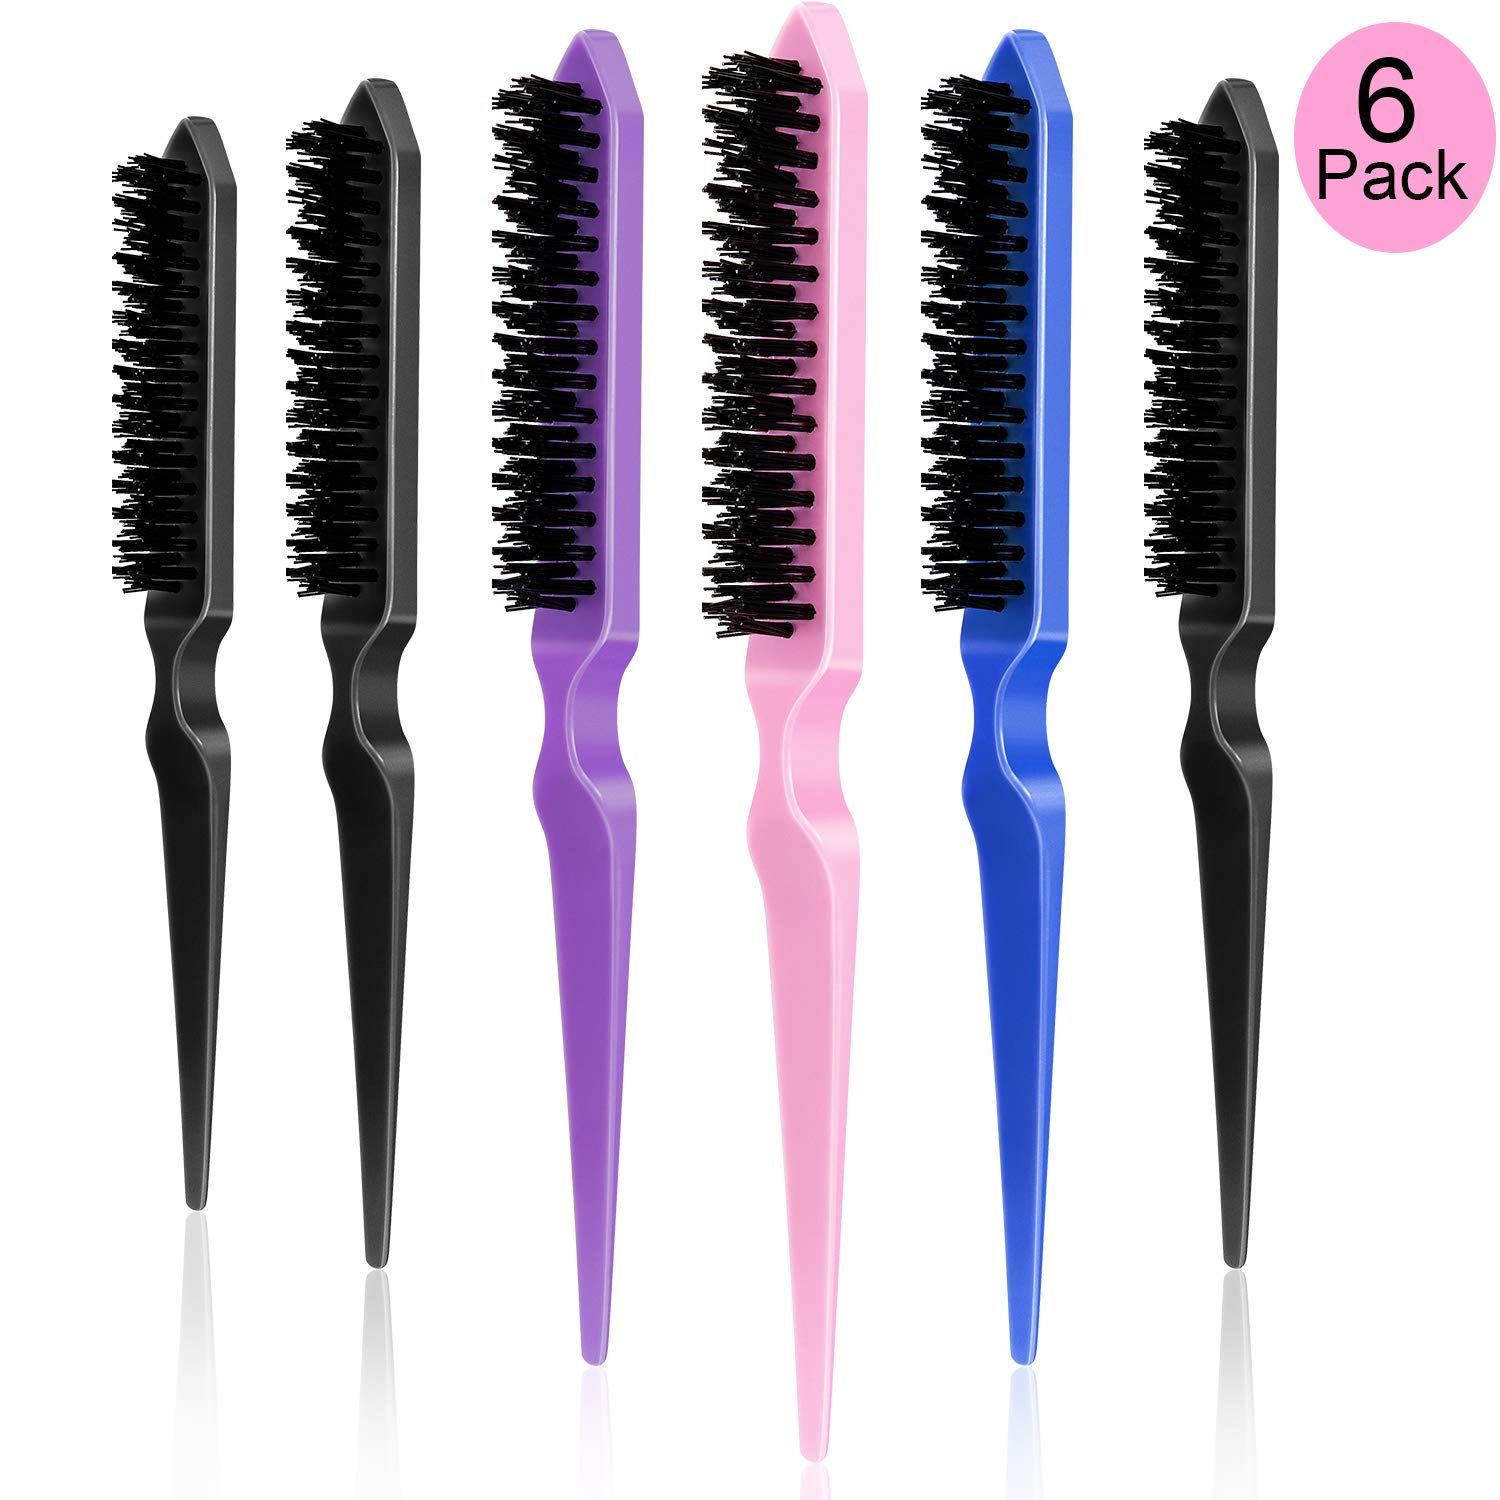 6 Pieces Nylon Teasing Hair Brushes, Three Row Salon Teasing Brush, Rat Tail Combs for Back Combing, Root Teasing to Add Volume and Hair Care Scalp Massage for Hair Growth